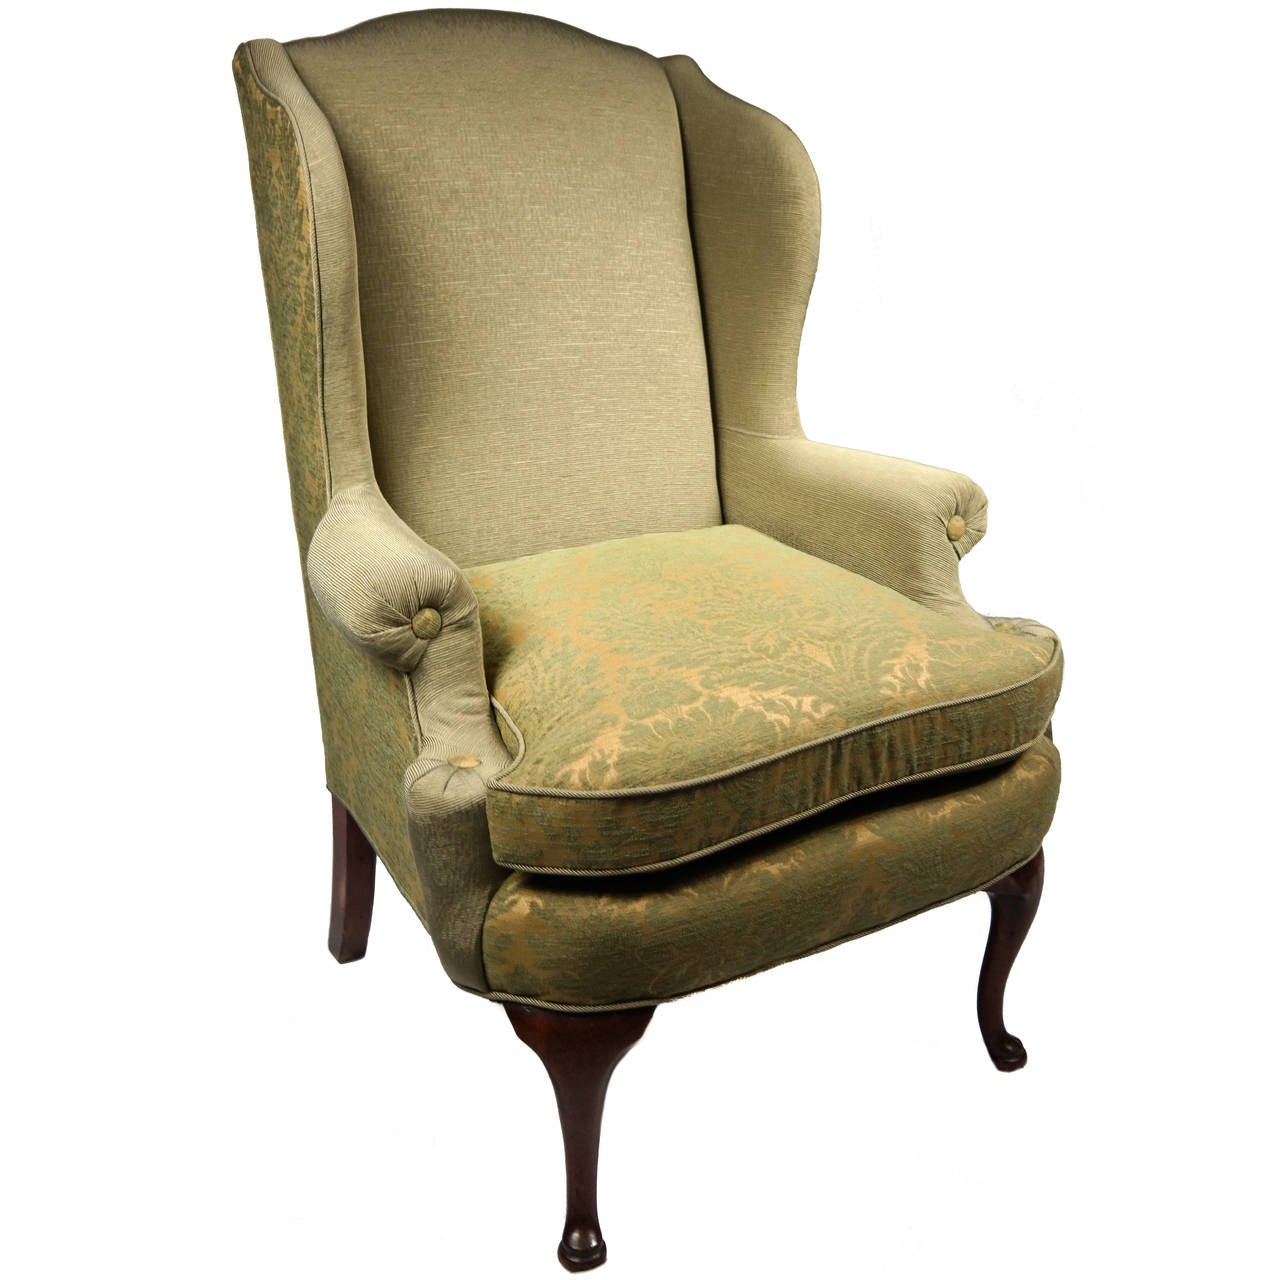 wingback chair for sale aeron replacement parts by southwood at 1stdibs